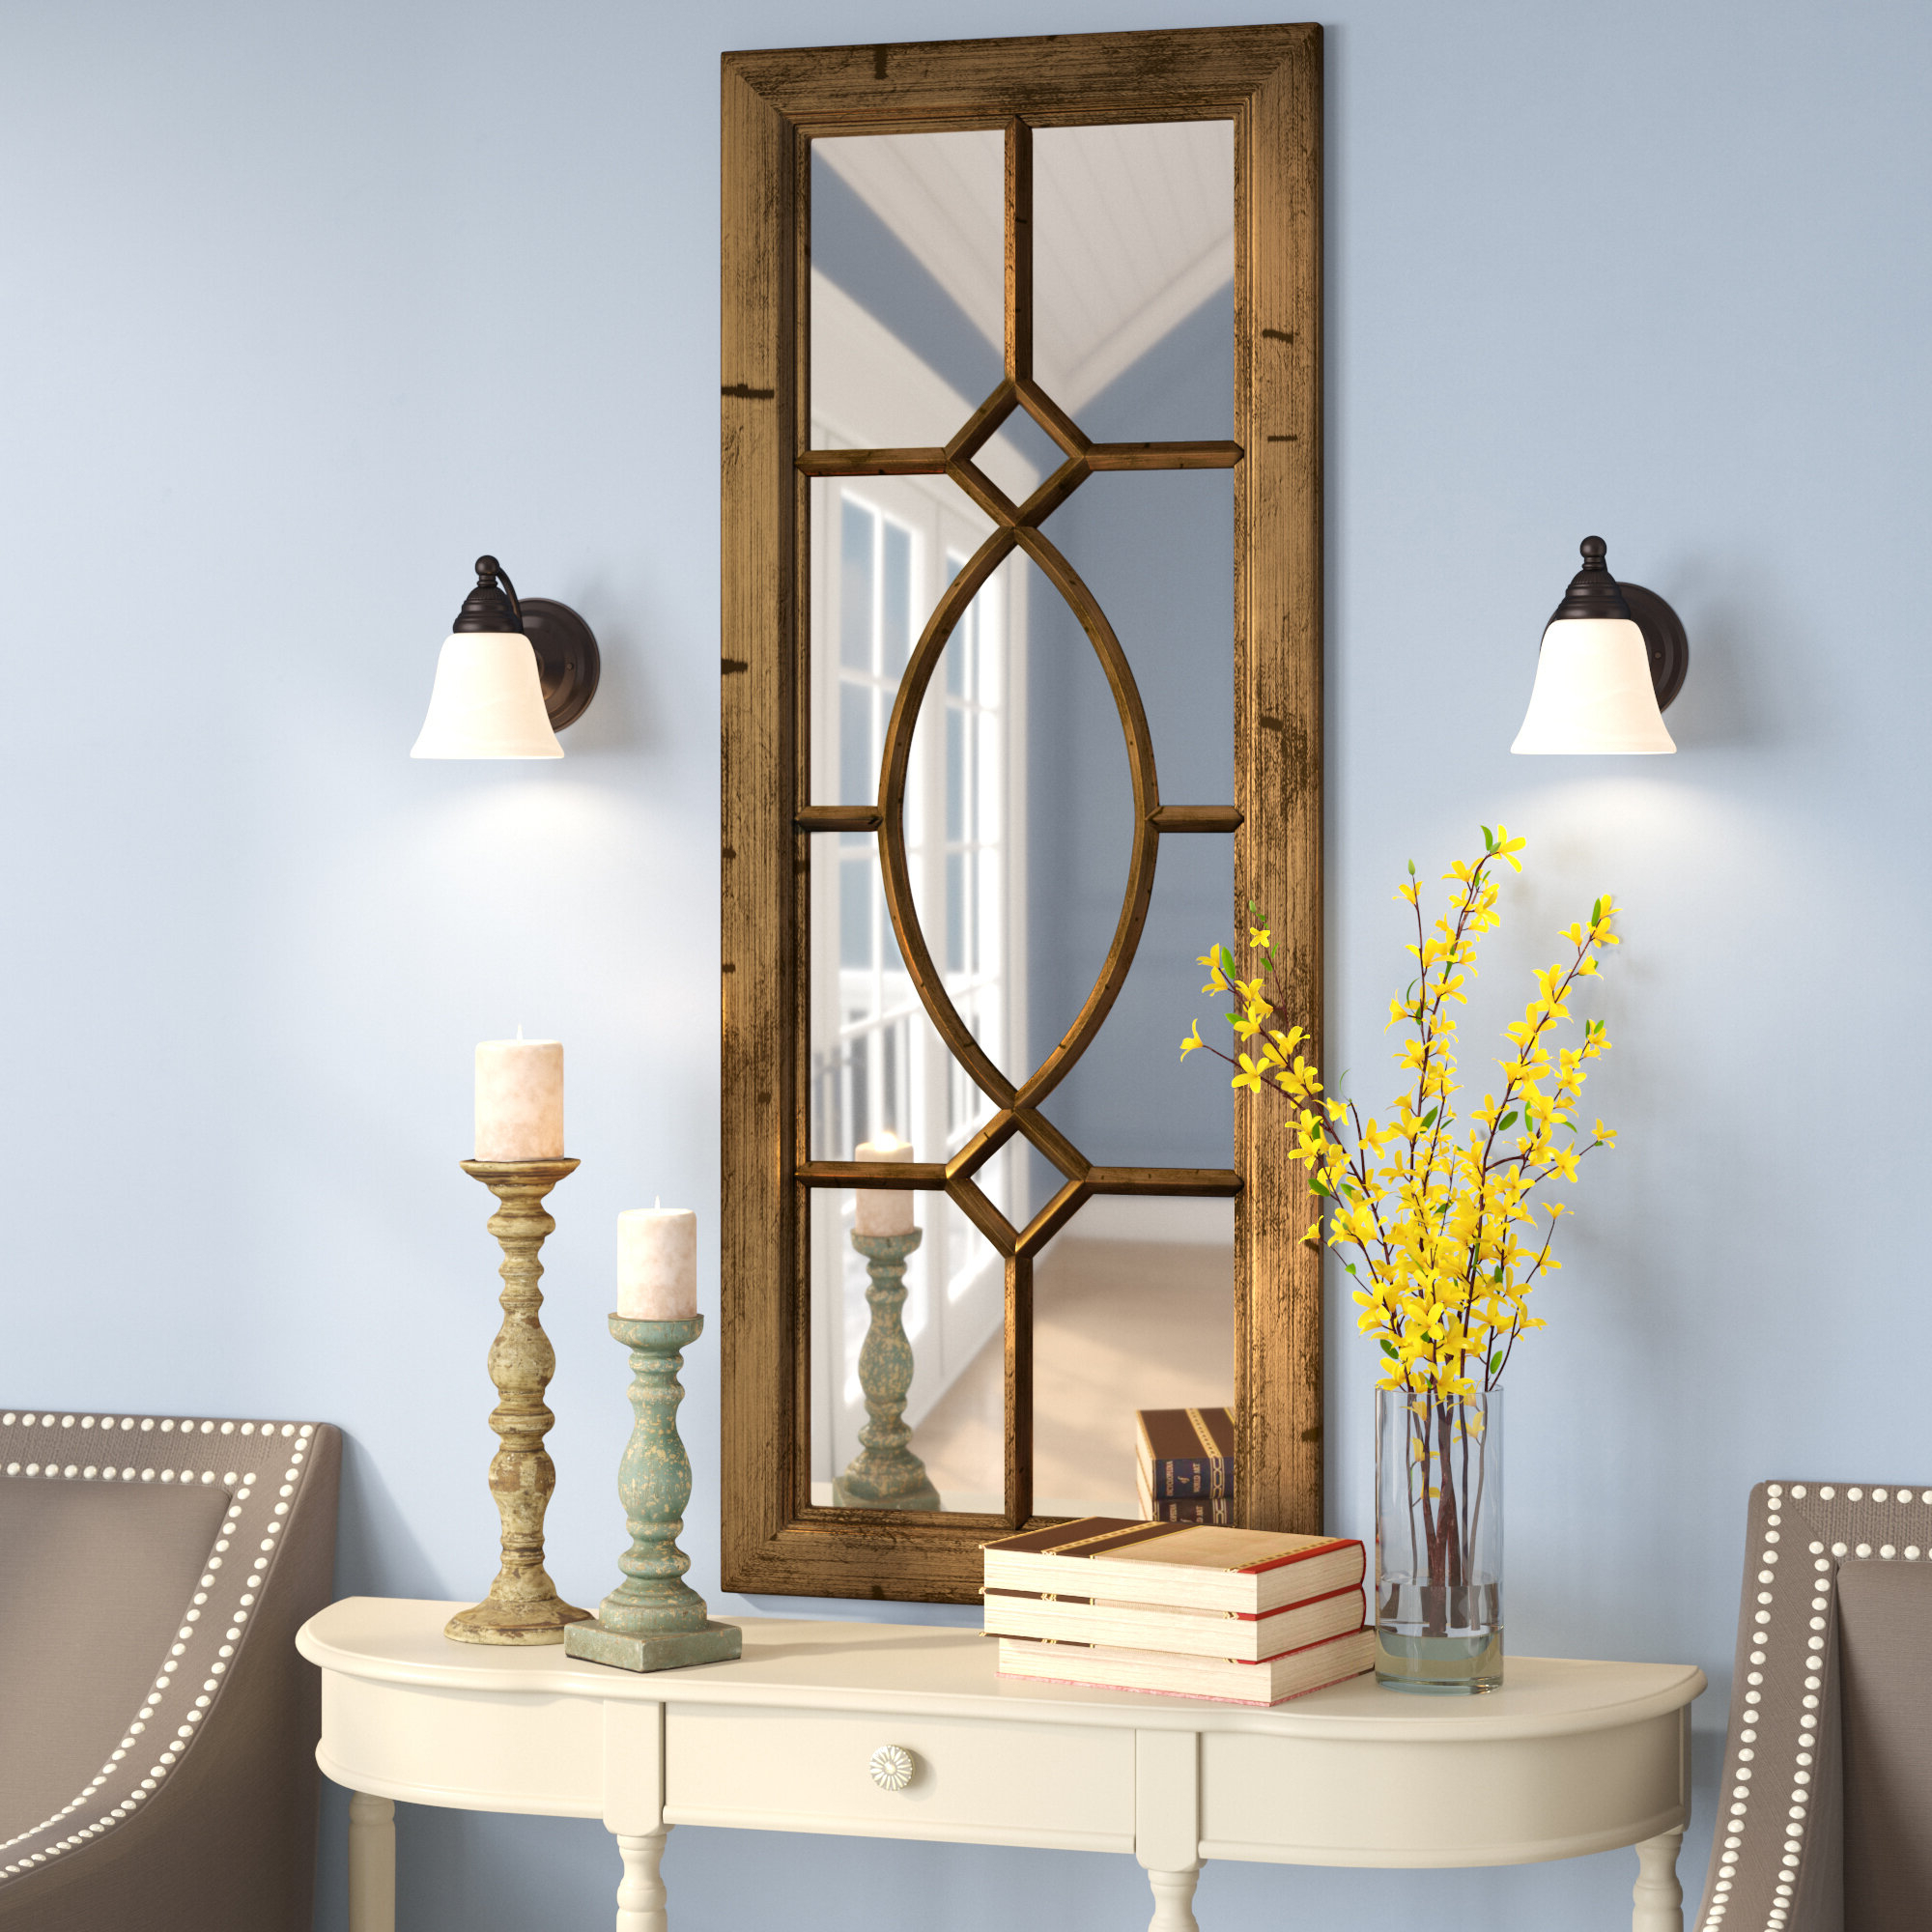 2019 Tellier Accent Wall Mirrors Intended For Spangler Wall Mirror (View 1 of 20)